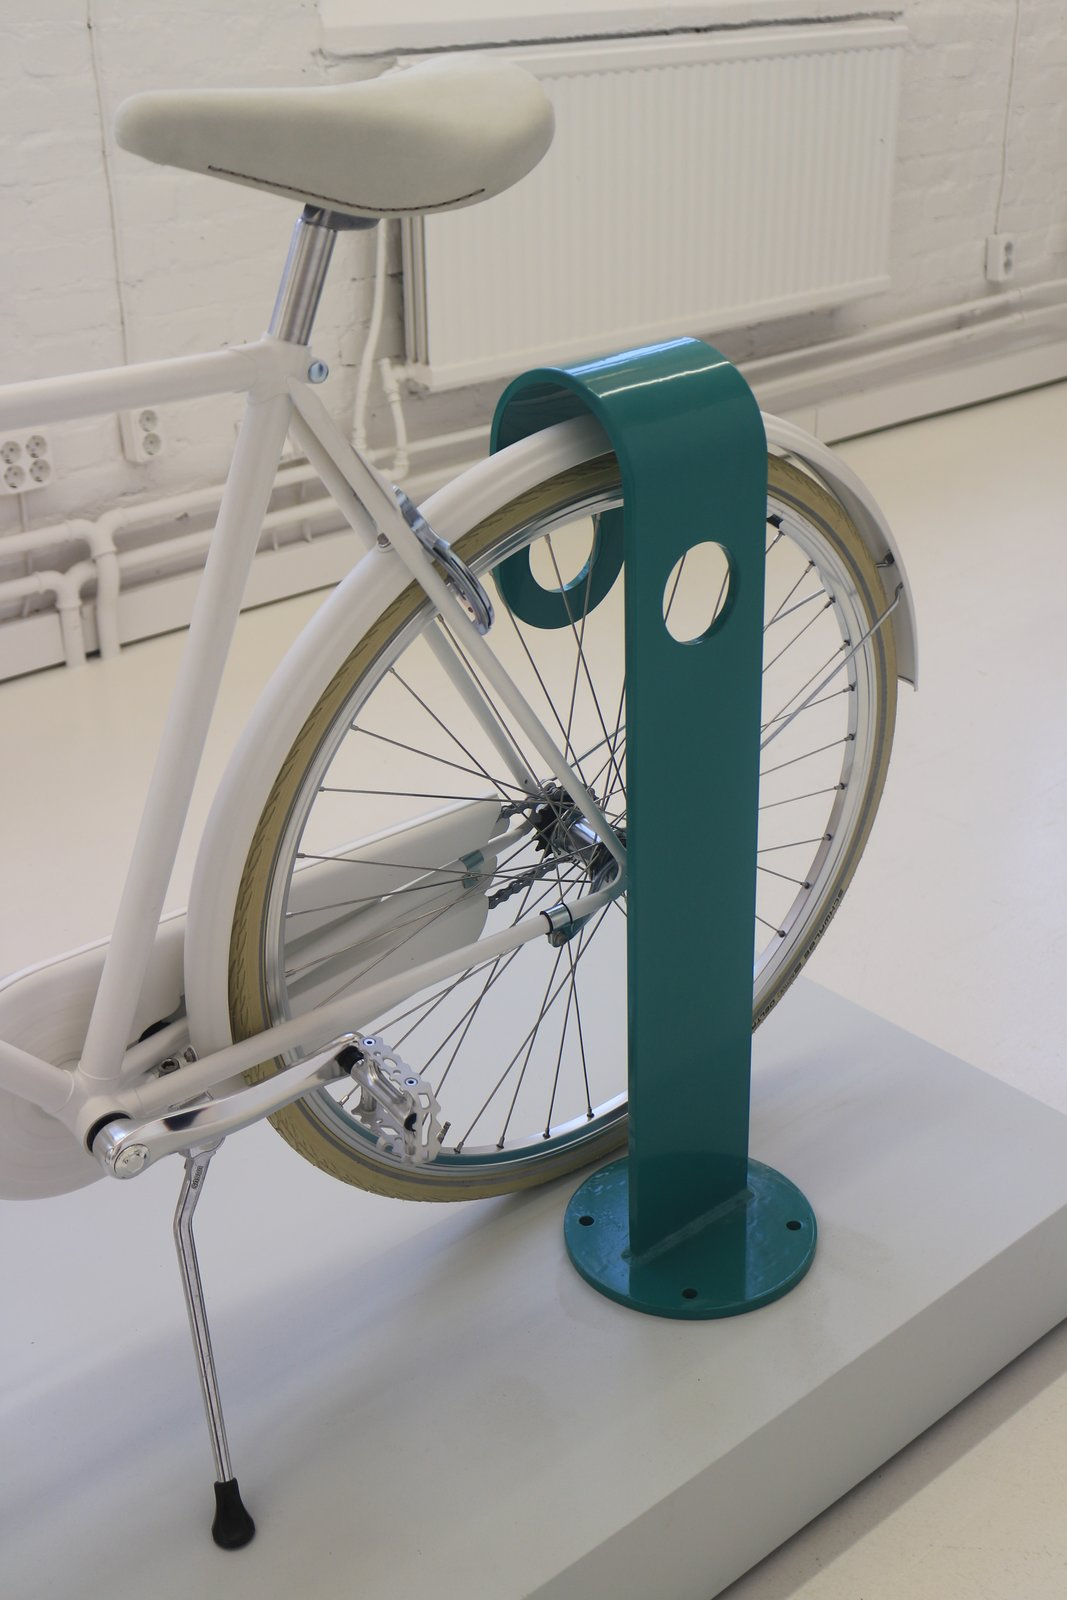 Stockholm-based Note Design Studio works within interior design, architecture, and graphic design as well as product design. For producer Nola, the studio has made the Hook cycle stand. A broad metal band forms the structure and makes it stand out, while the narrow width makes it seem smaller at a closer distance. The stand is available in pastel blue as well as orange and light grey.  On the Scene at Stockholm Design Week 2013 by Marianne Johnsgård